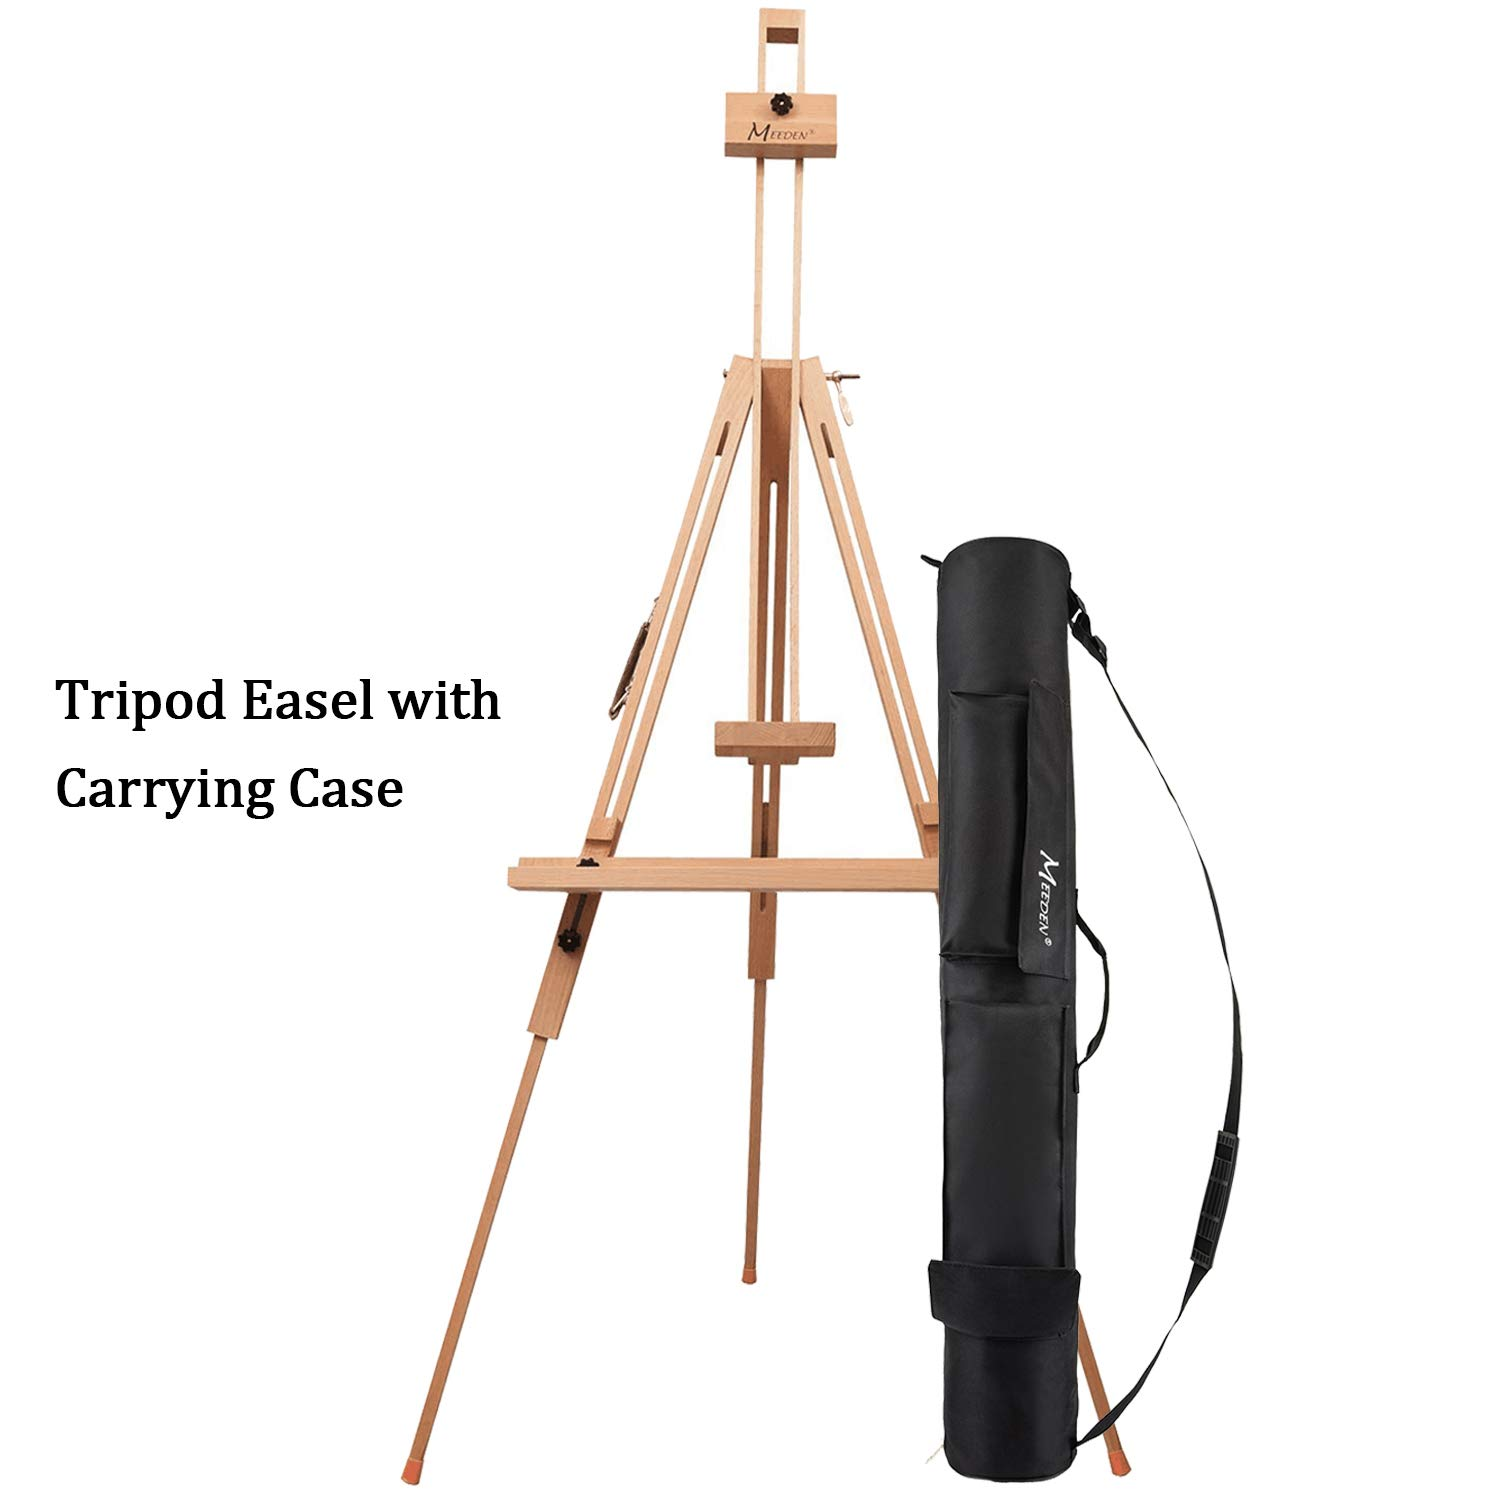 Hold Canvas up to 44 Landscape Artists Solid Beech Wood Universal Tripod Easel Portable Painting Artist Easel MEEDEN Tripod Field Painting Easel with Carrying Case Perfect for Painters Students